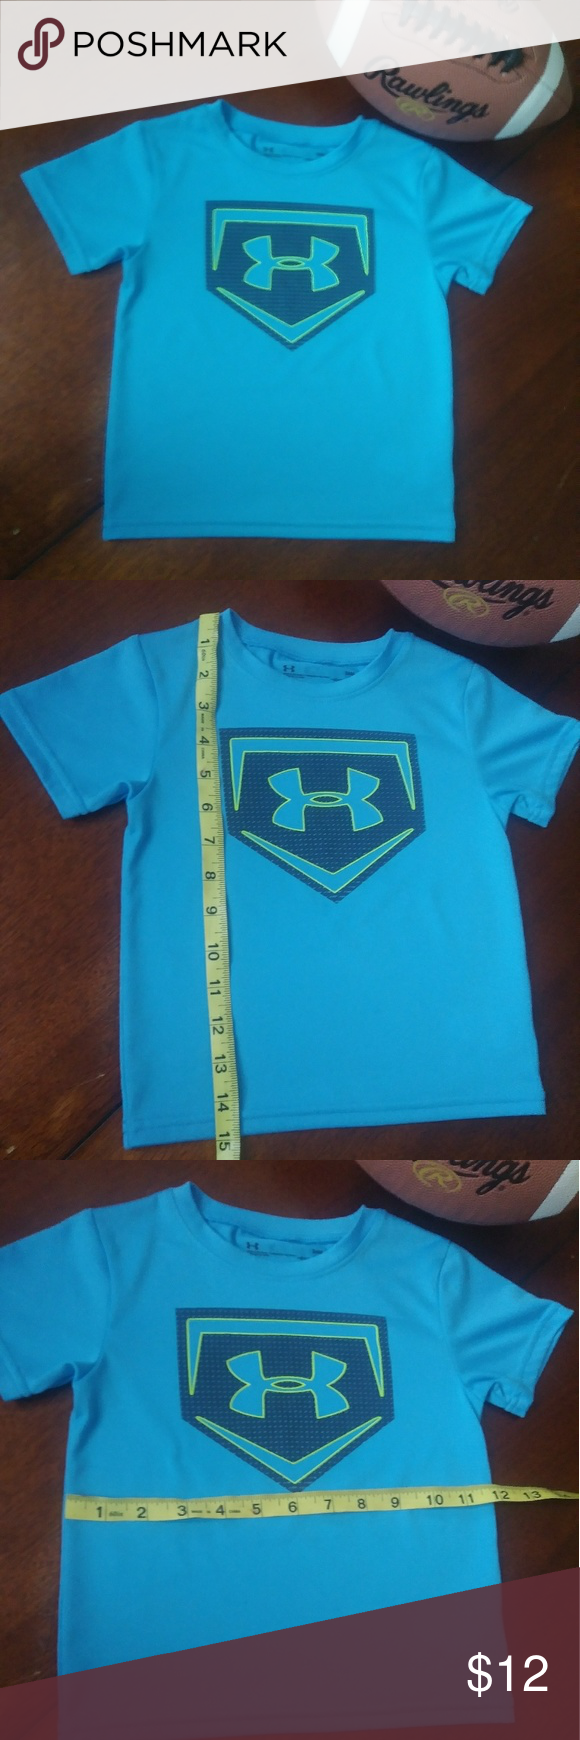 86c9feb80 Boys Under Armour Heat Gear shirt Size 24 Months Preloved Light Blue Short  sleeve shirt with Under Armour Logo in the front. Heat Gear is the first  layer to ...